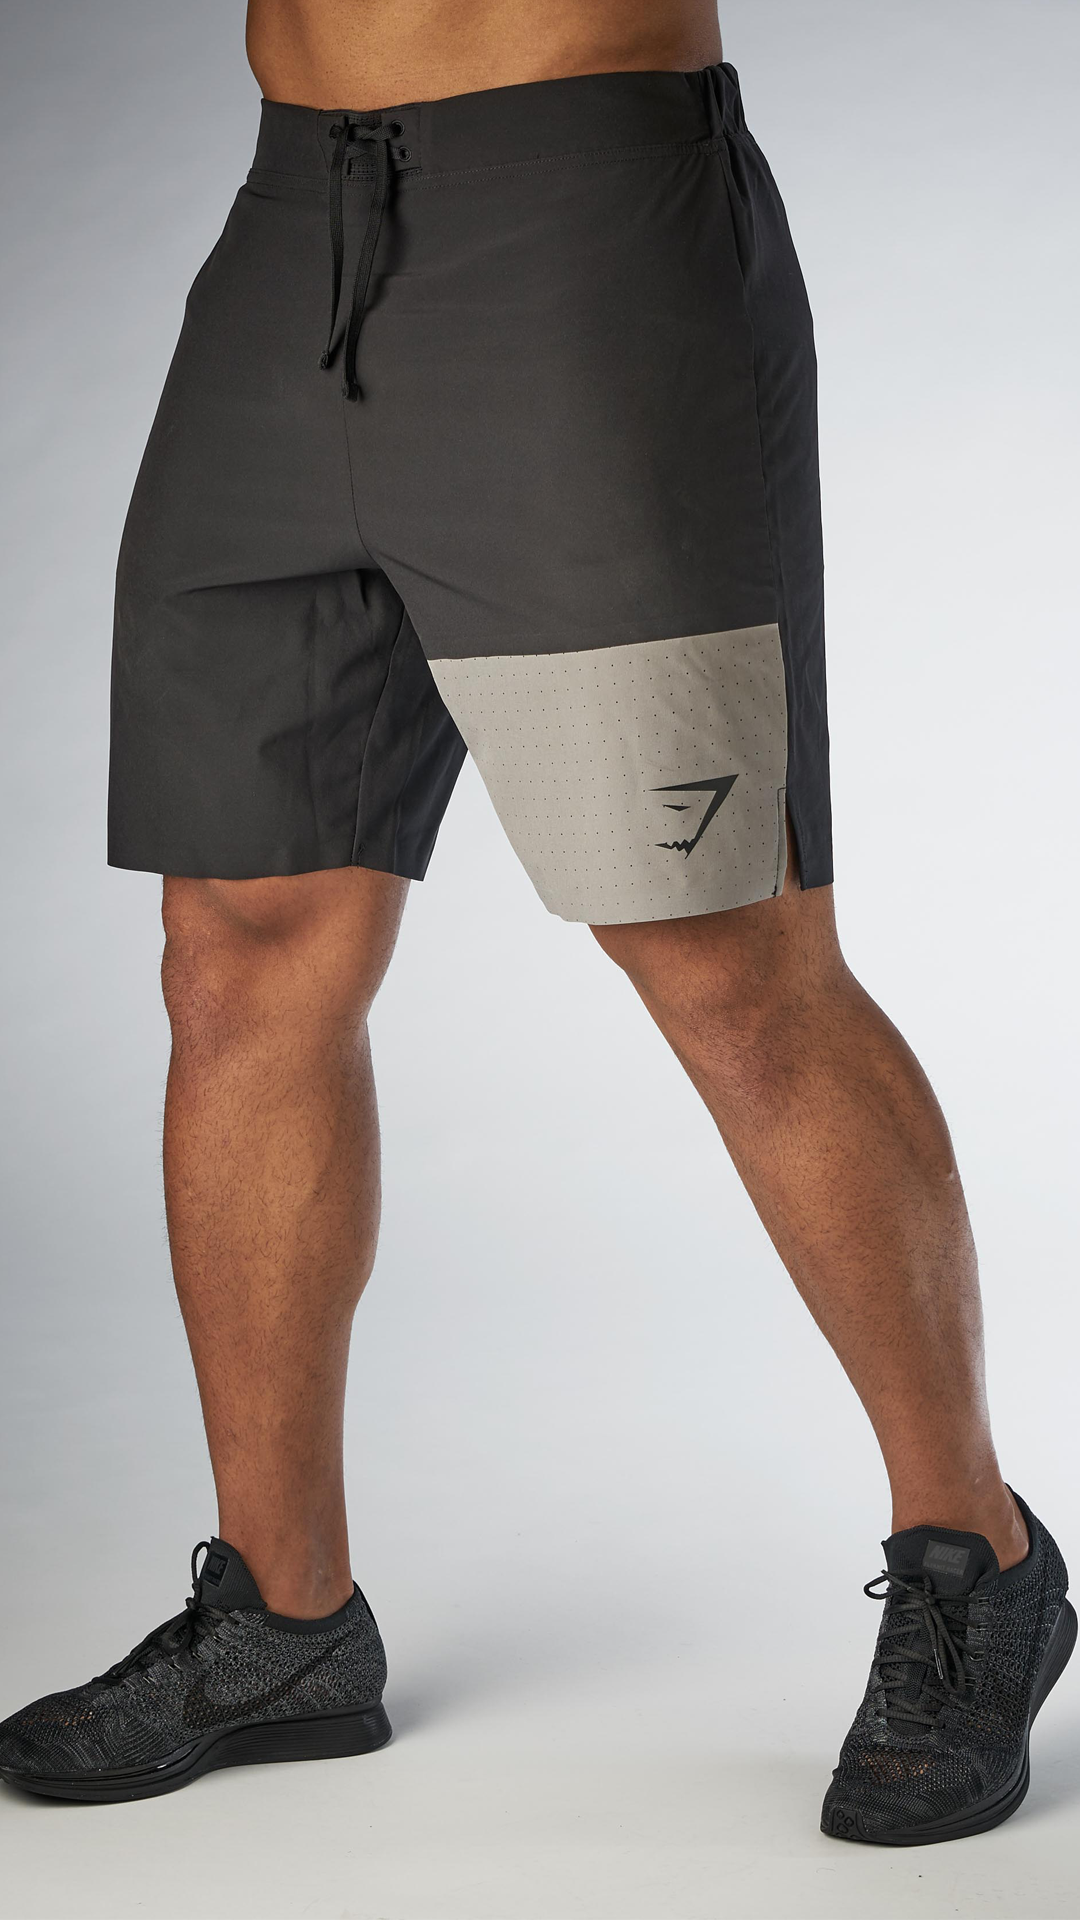 cc4791ba11 The Men's Board Shorts are a must-have for your holiday wardrobe. Perfect  for surfing, or simply chilling on the beach.